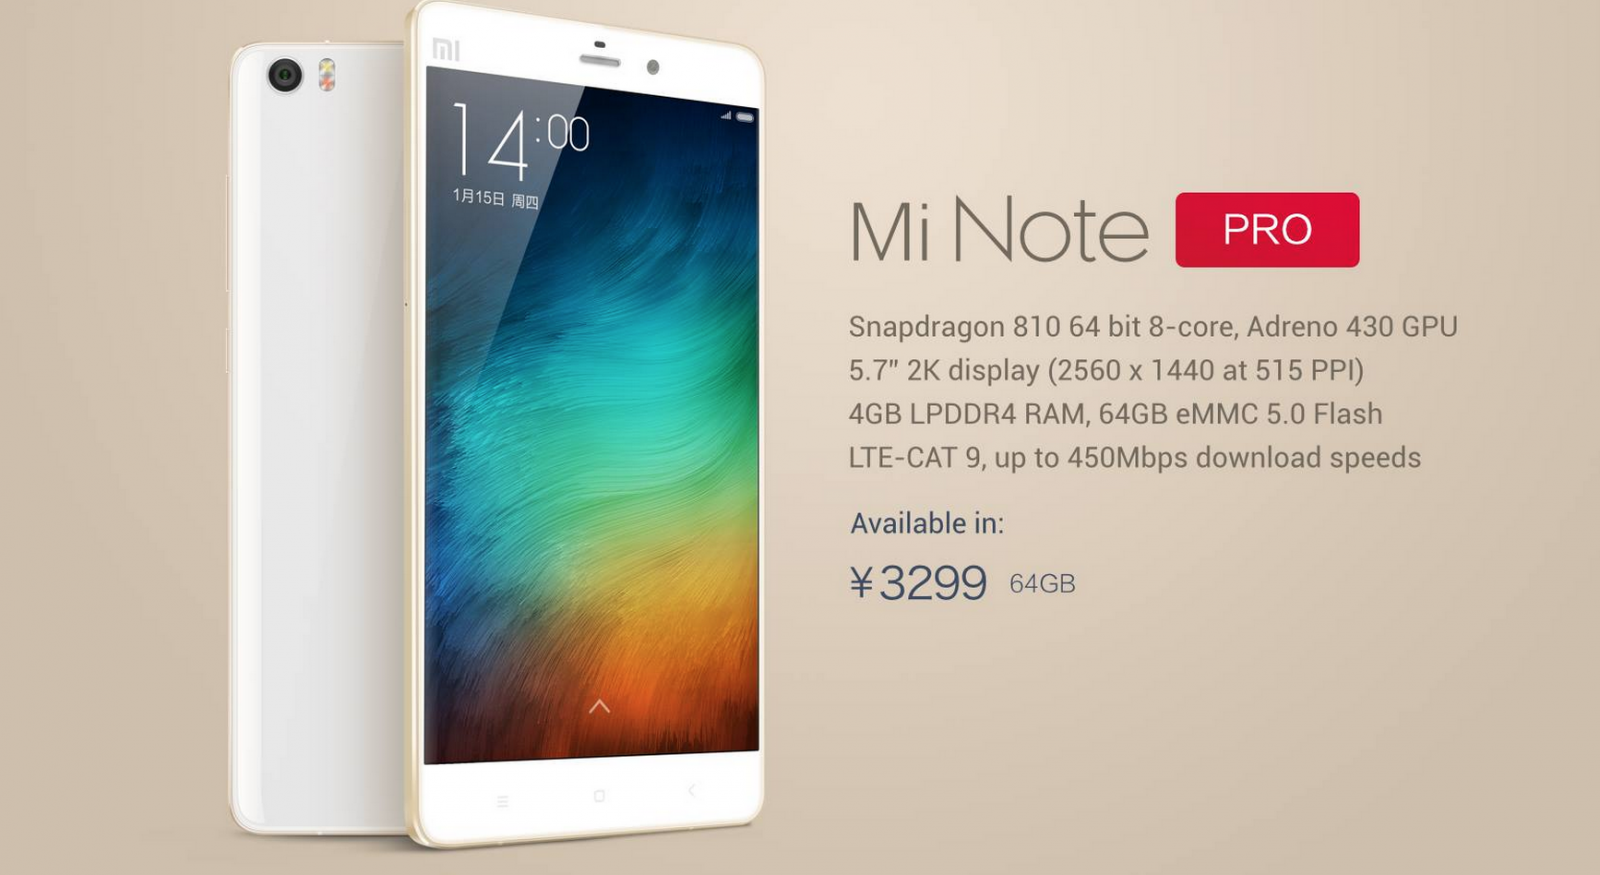 Mi Note Pro Launched with Snapdragon 810